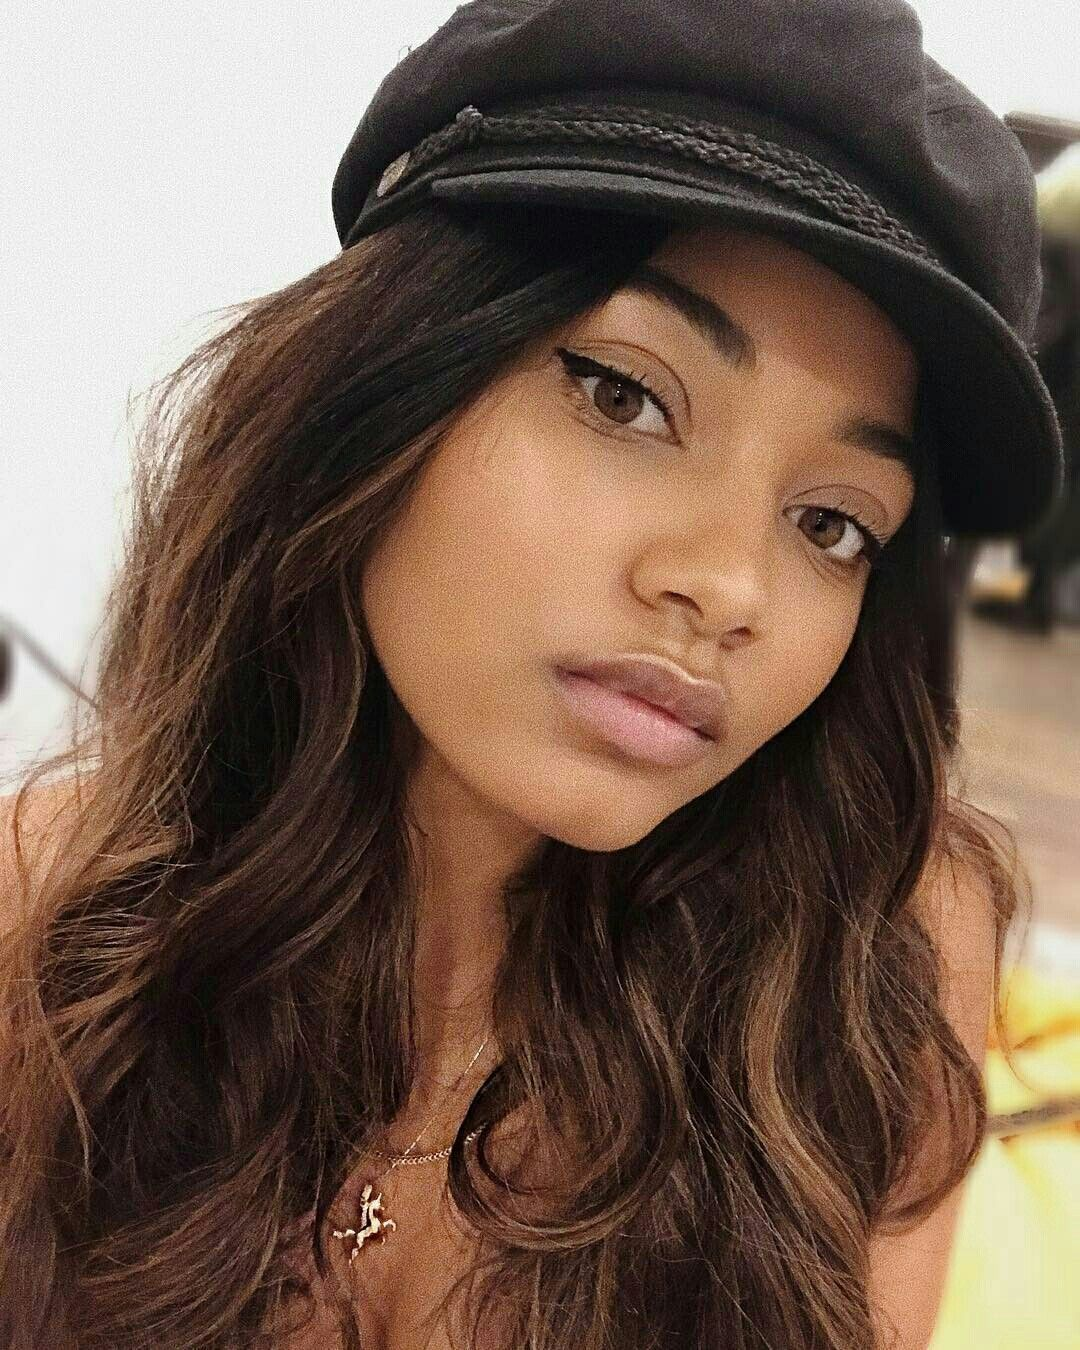 Selfie Danielle Herrington nude (73 photos), Cleavage